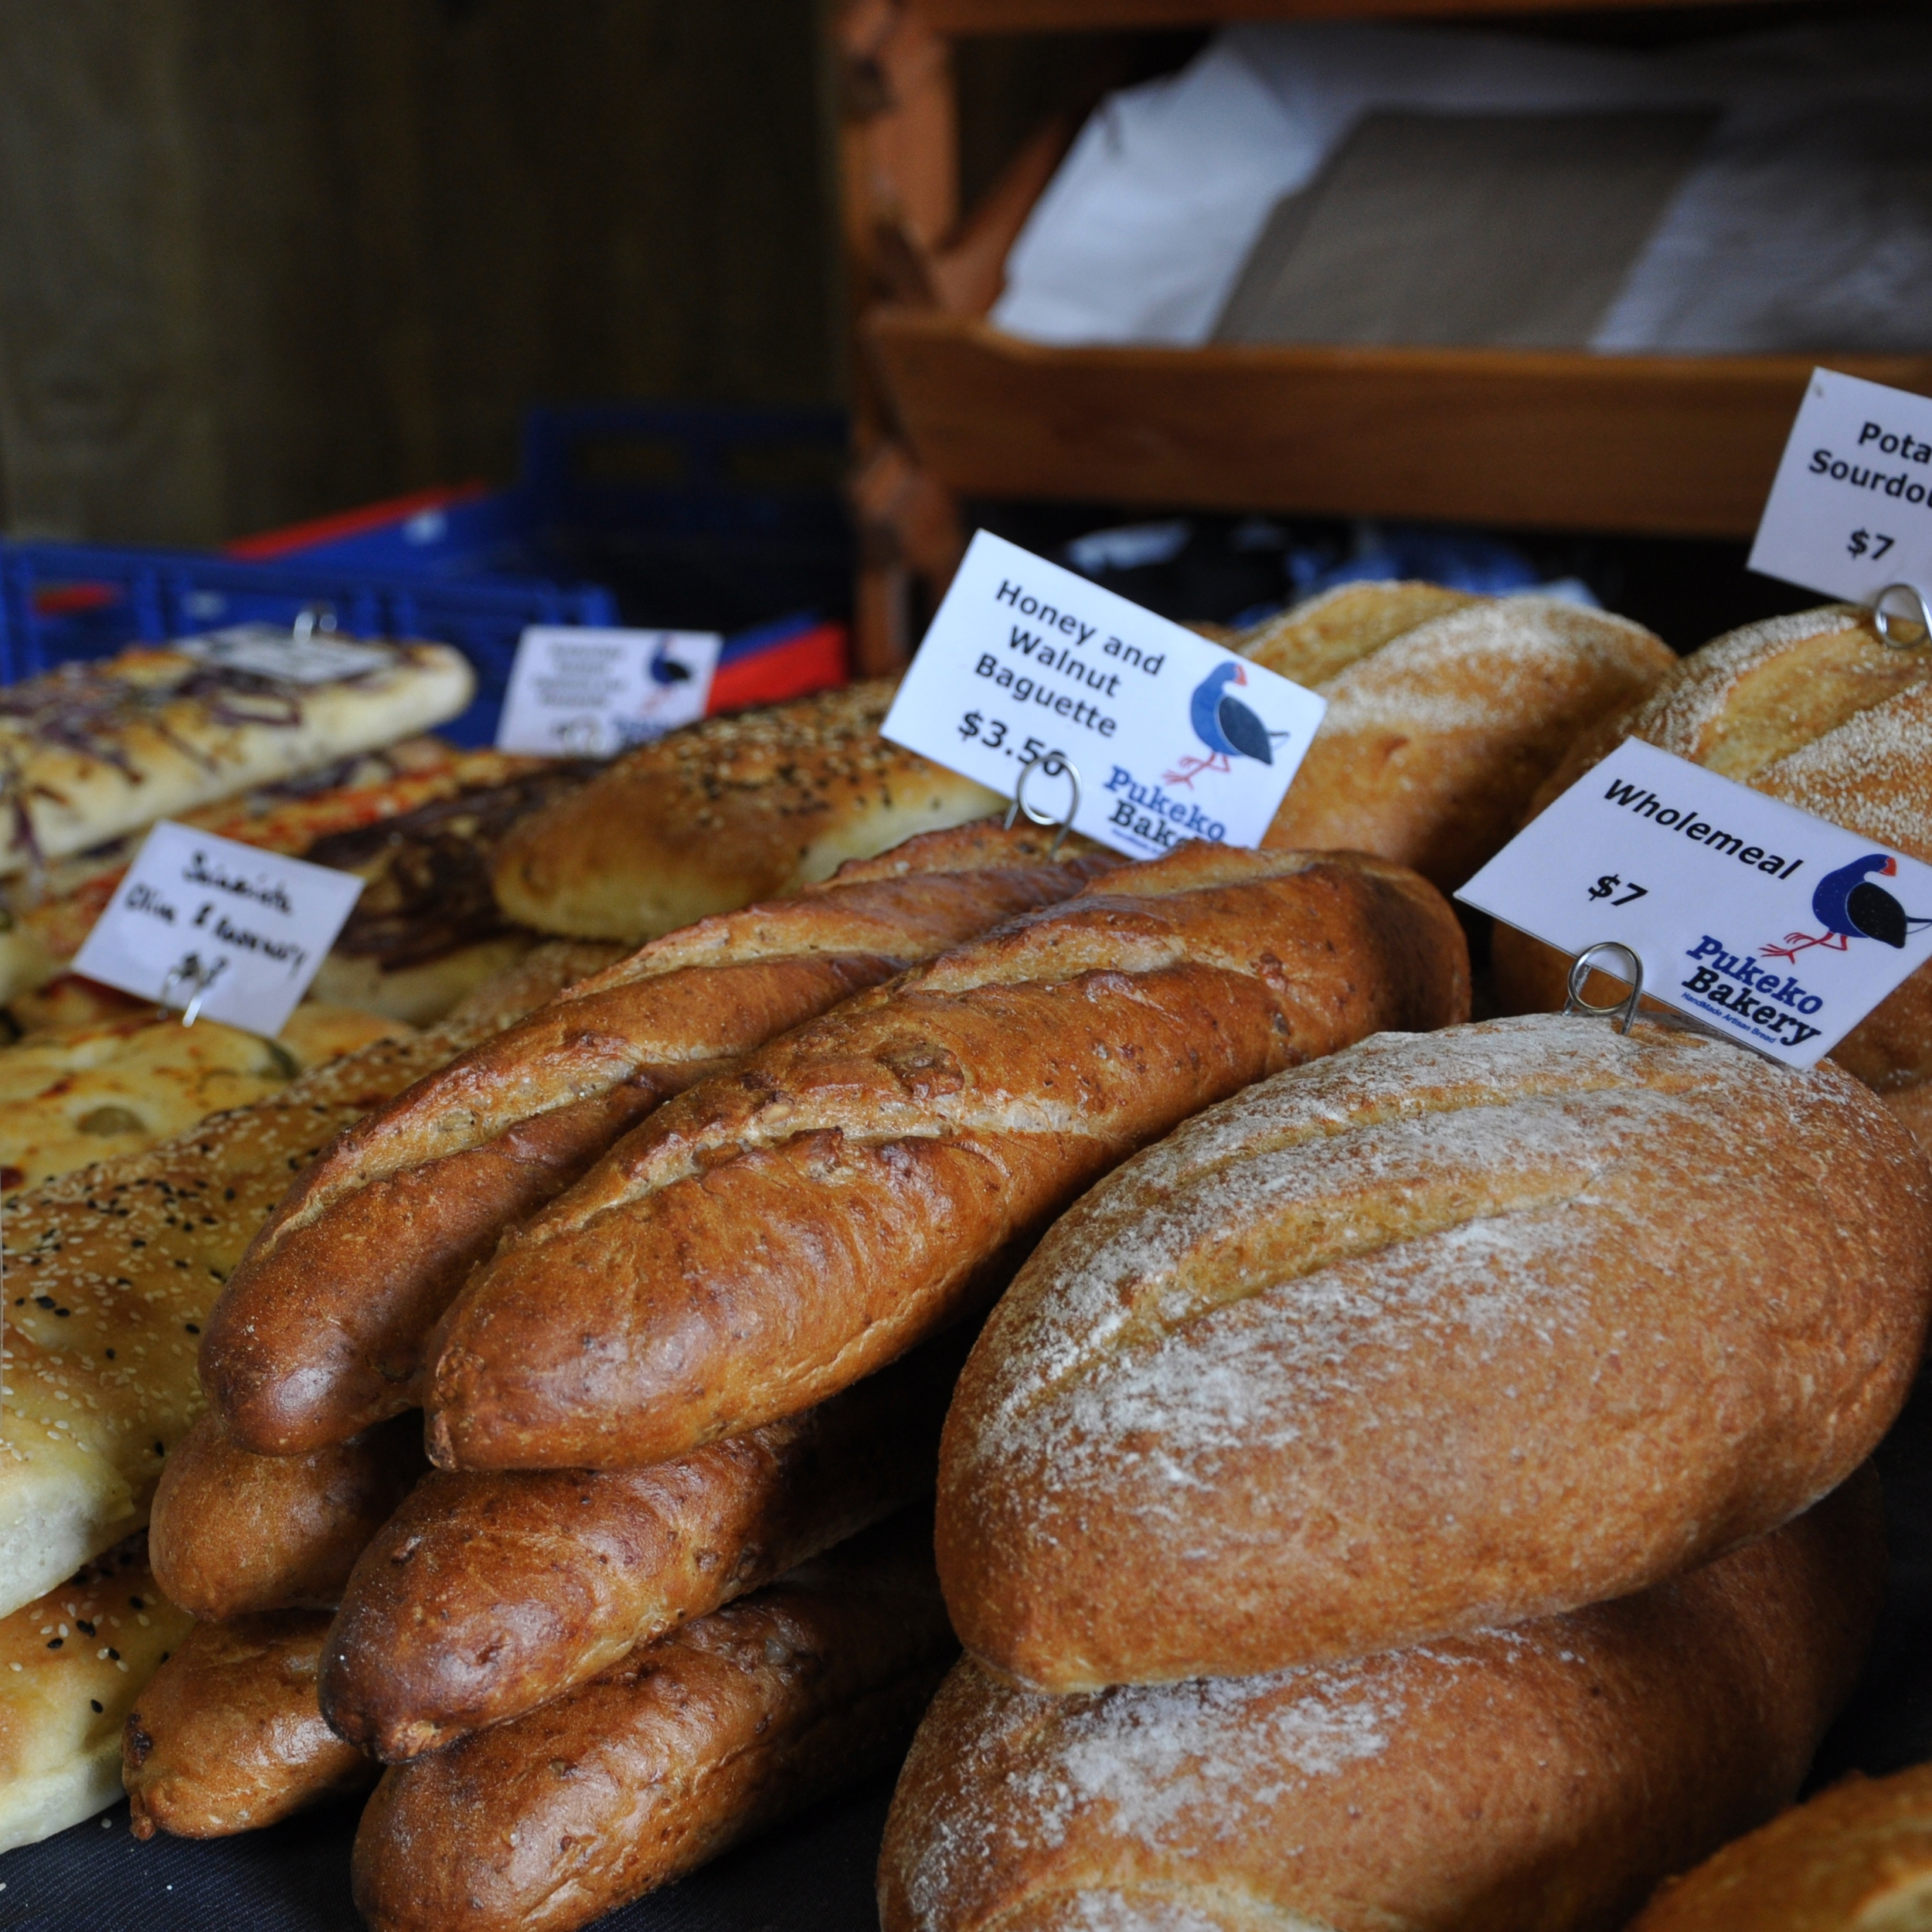 Pukeko Bakery breads available at Clevedon Farmers Market and La Cigale